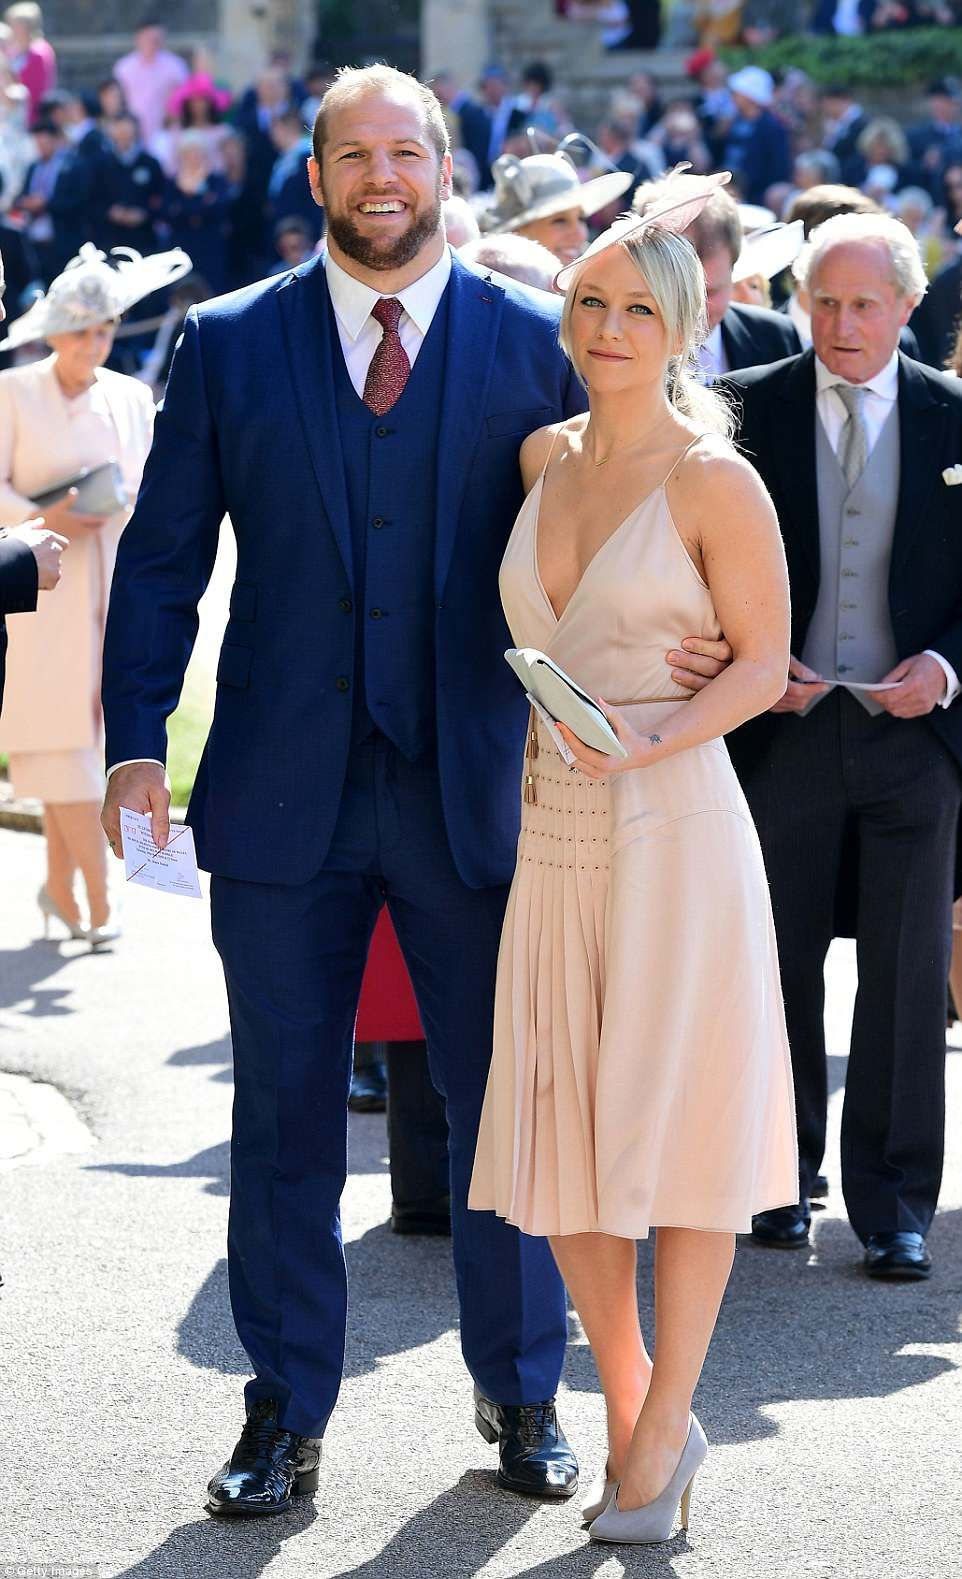 Tom Hardy Royal Wedding.George And Amal Clooney Turn Heads As They Attend The Royal Wedding